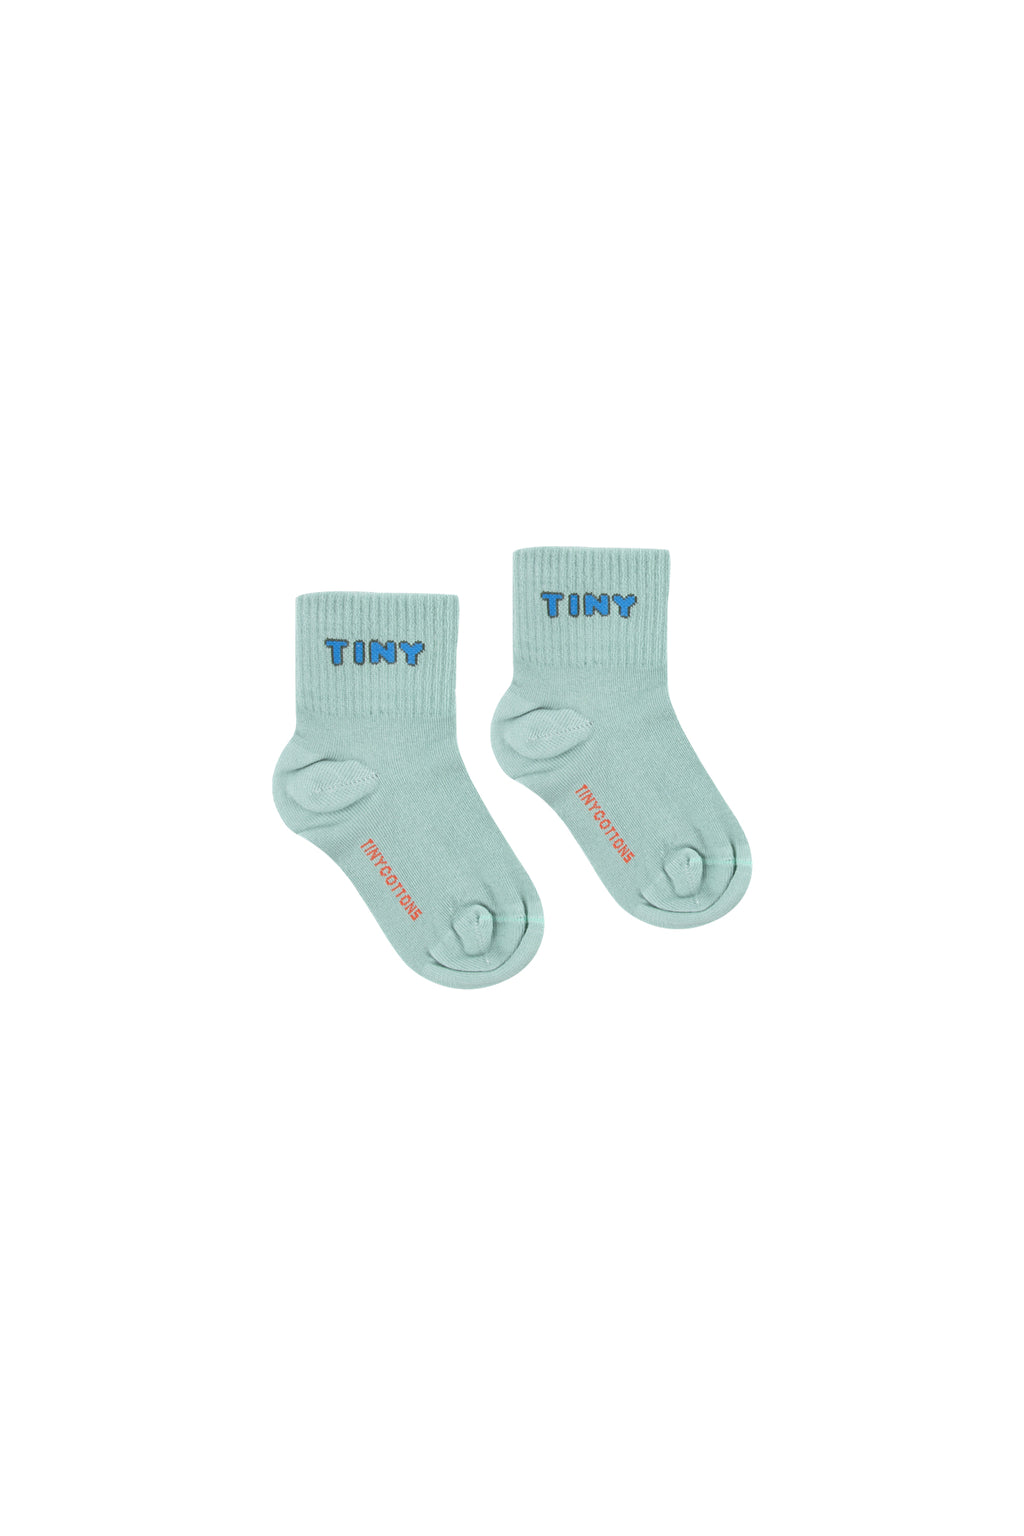 Tiny Cottons Tiny Quarter Socks Sea Green/Cerulean Blue